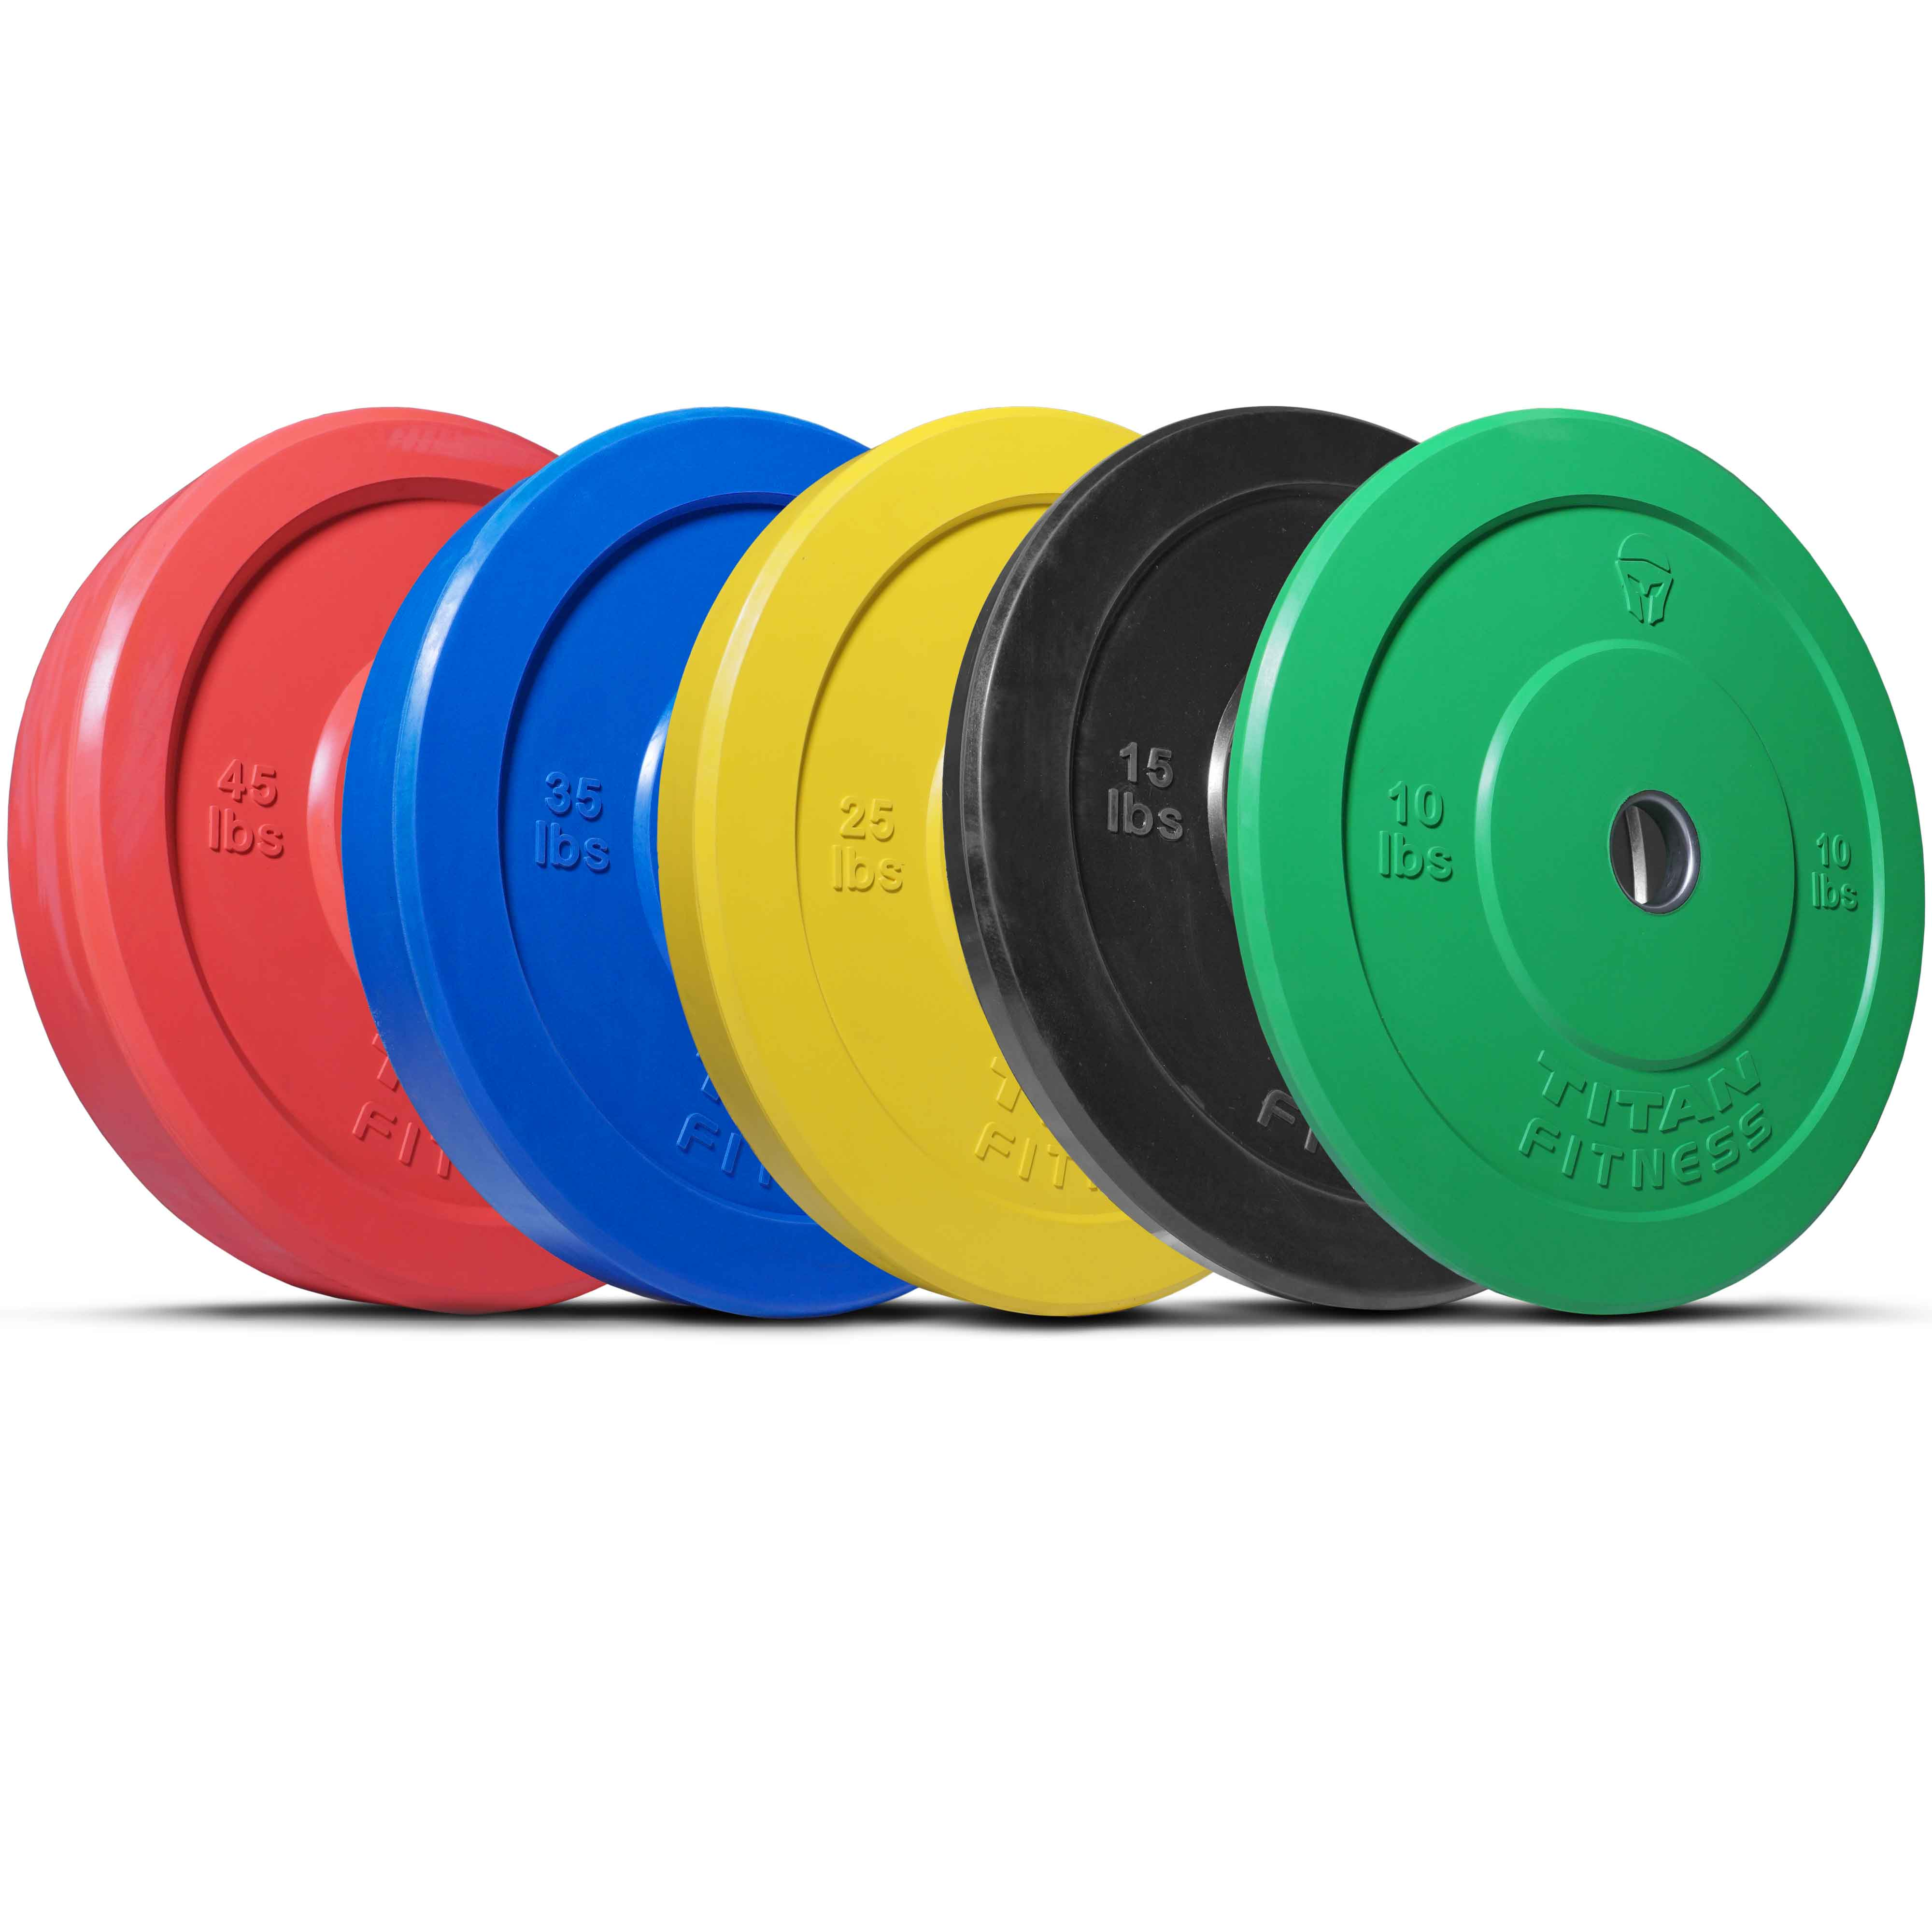 Titan 260 lb Set of Olympic Bumper Plates Benchpress Strength Training Power WOD